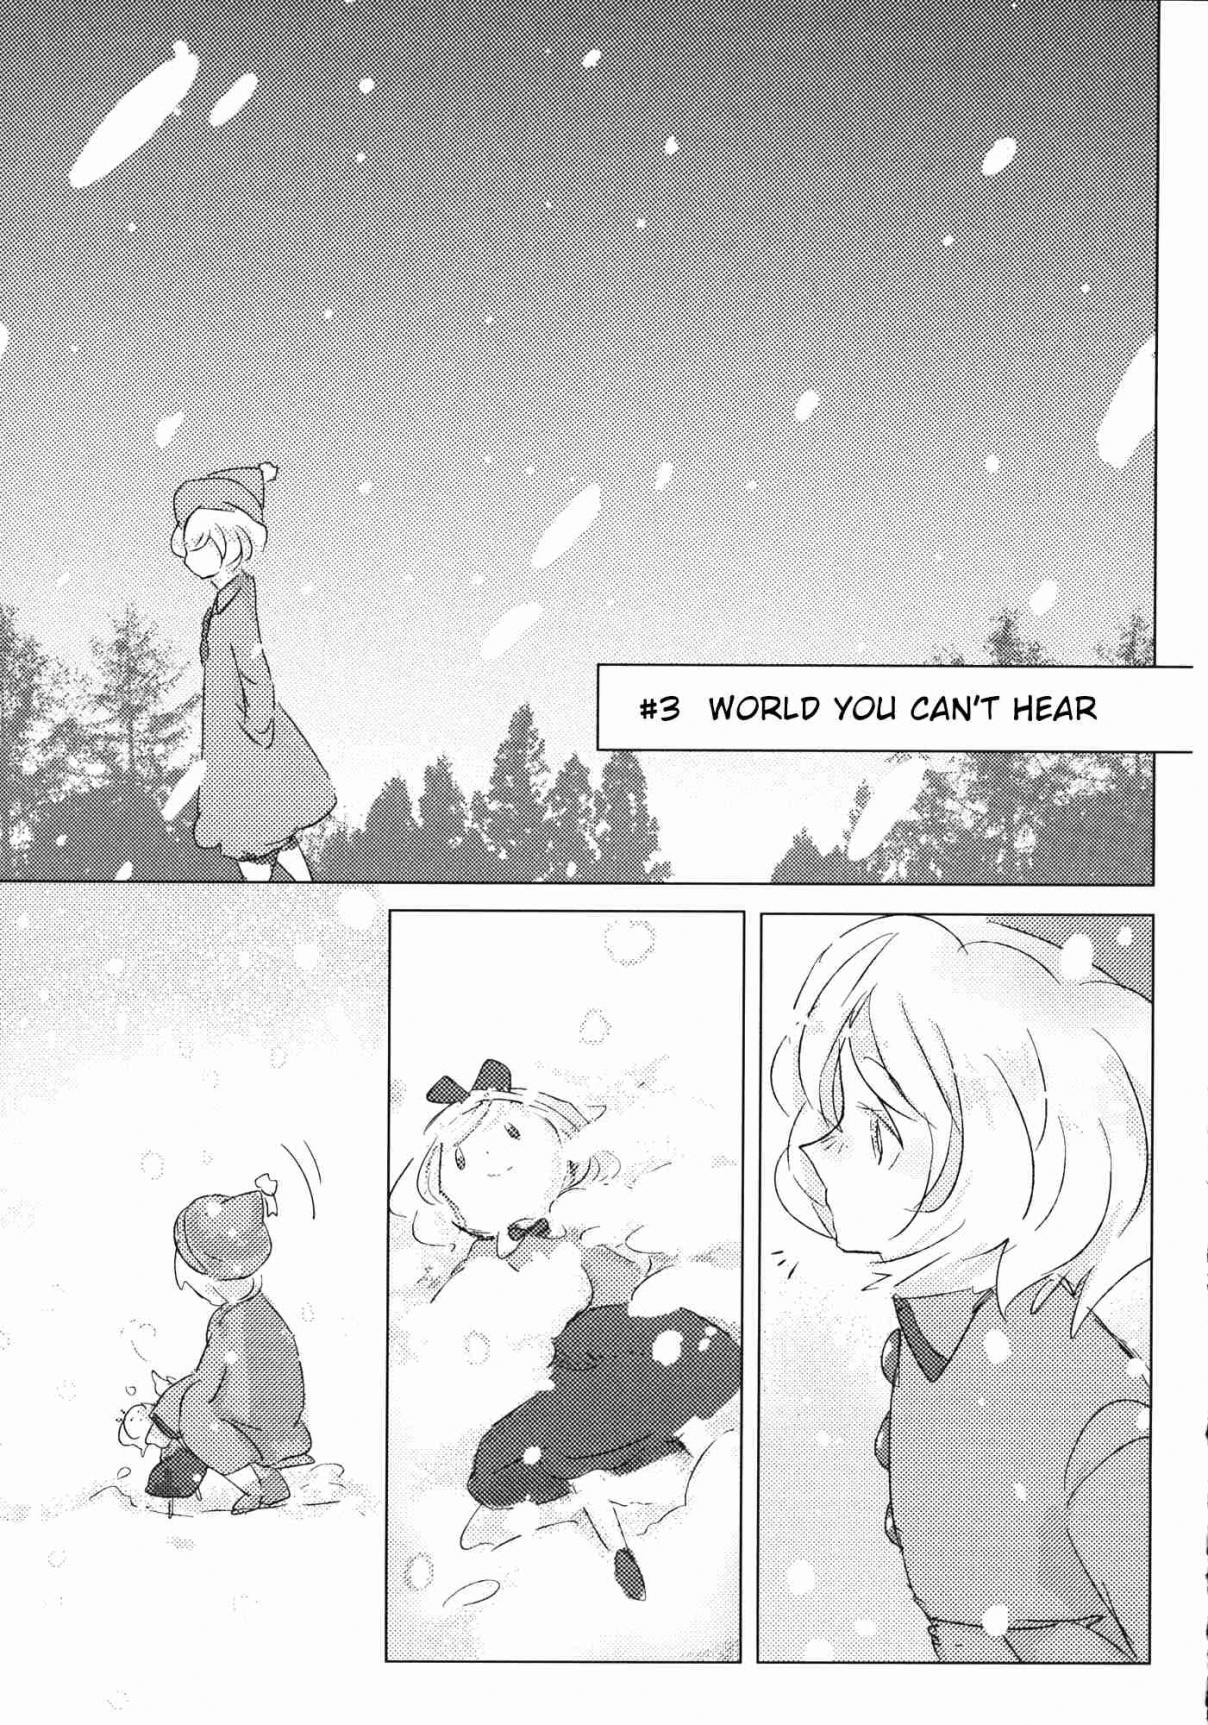 Touhou Ima Hana Kikoe (Doujinshi) Vol. 1 Ch. 3 World You Can't Hear